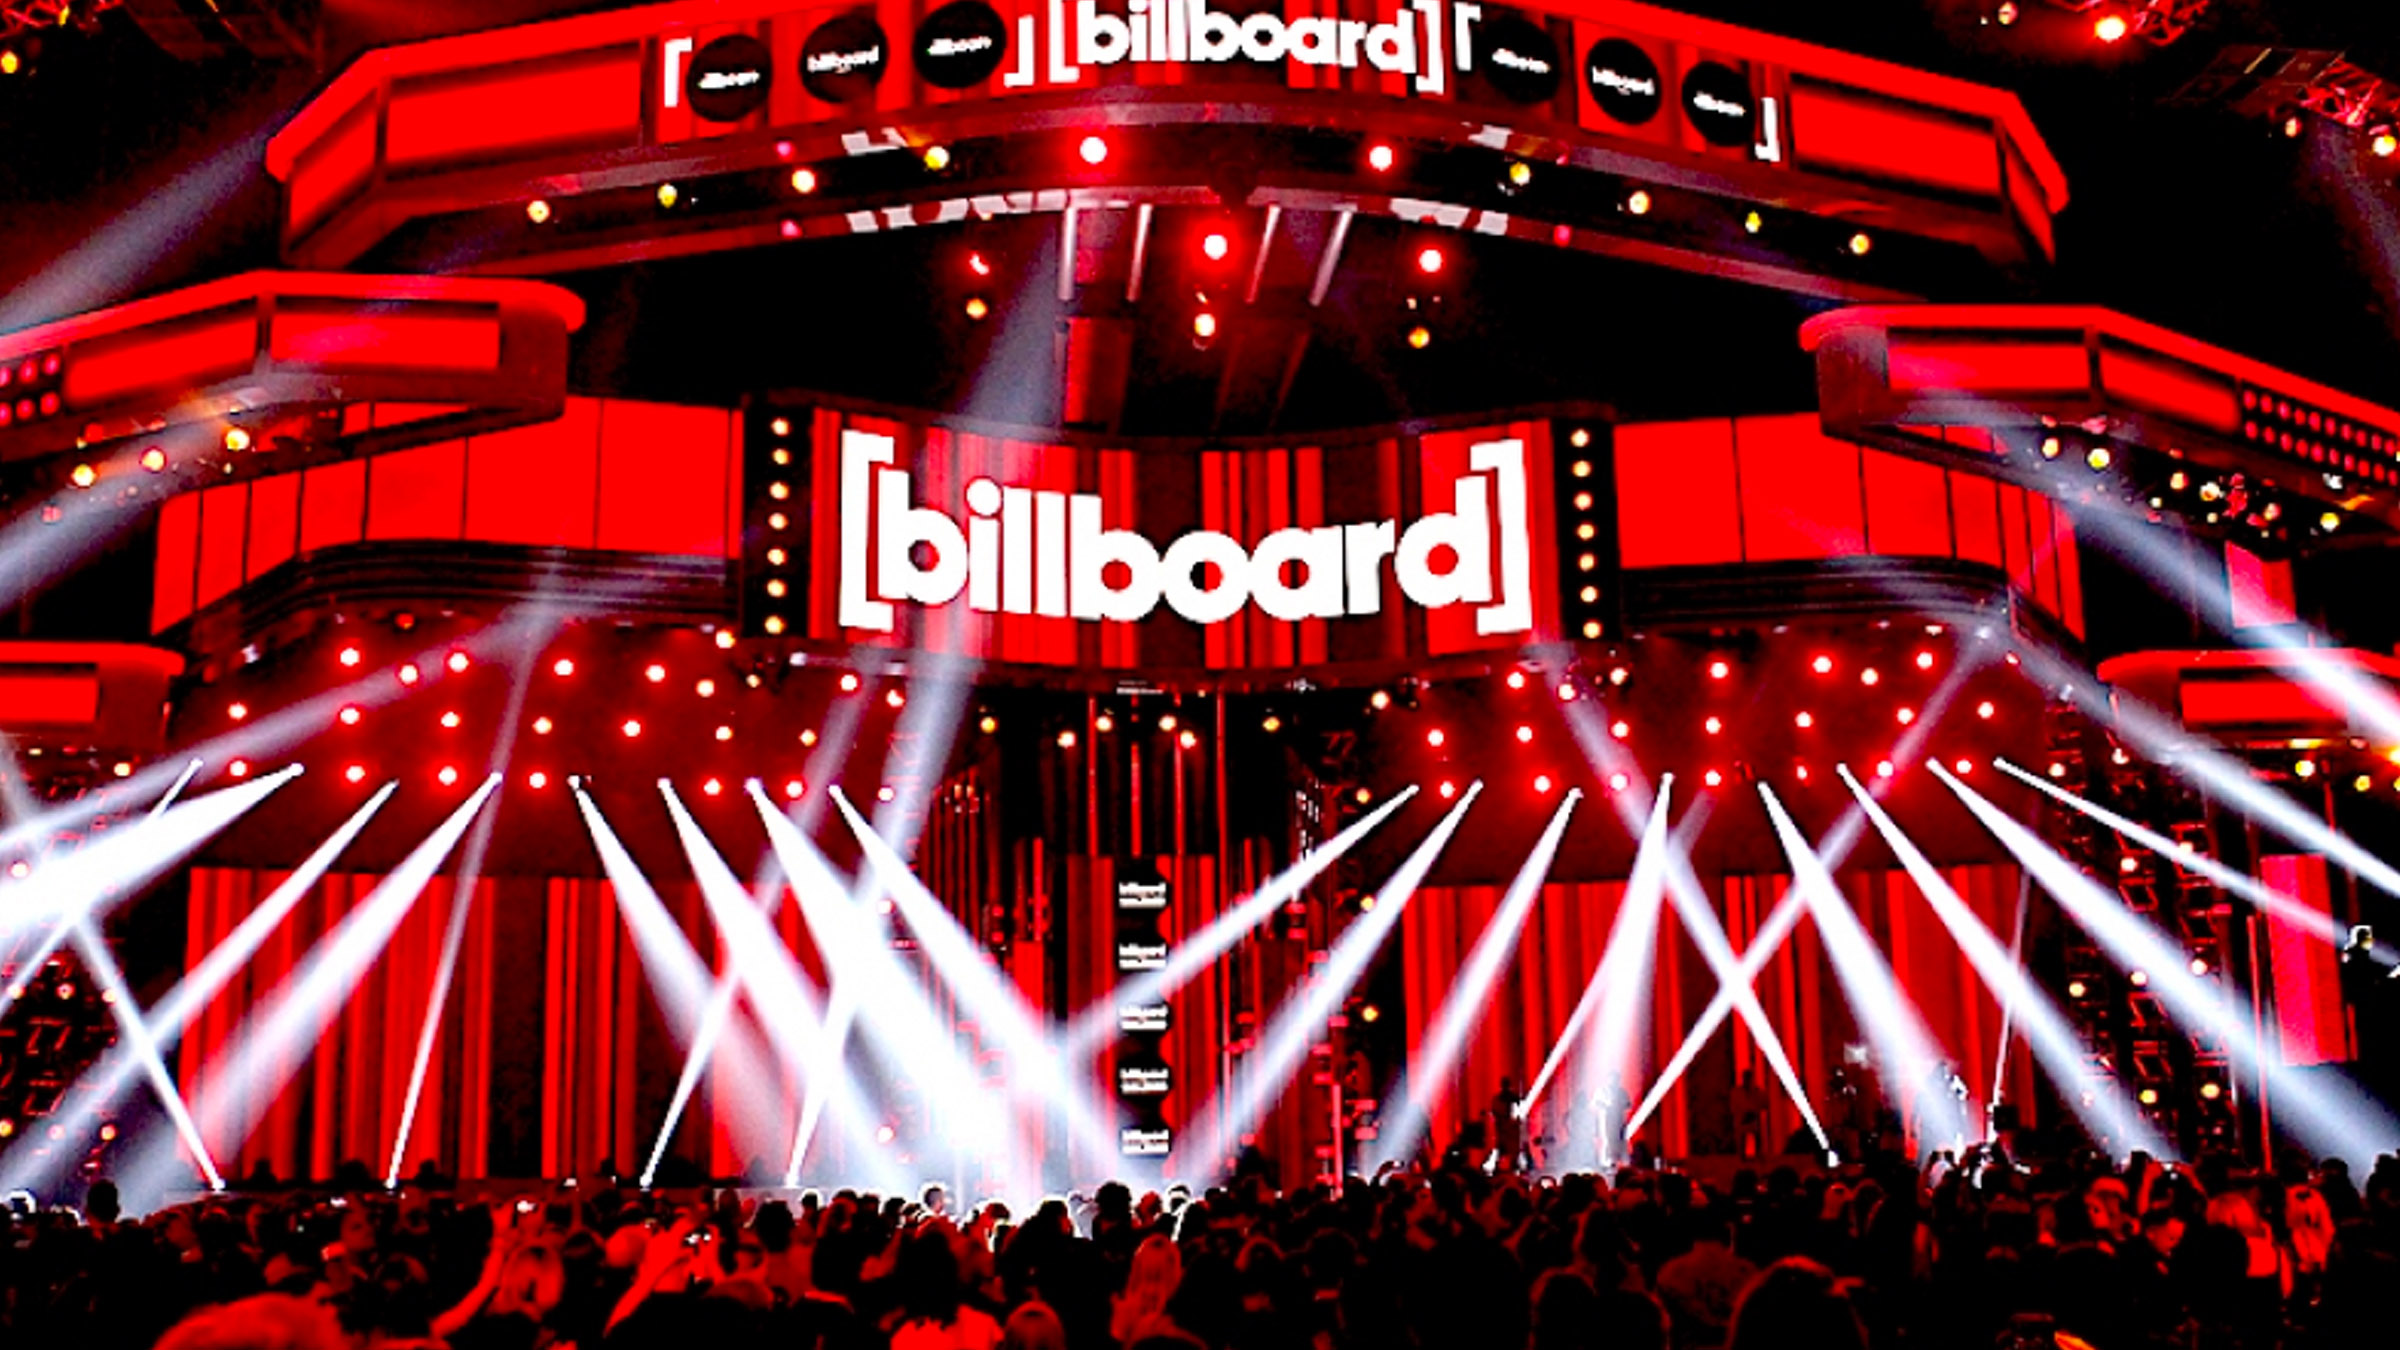 Billboard home